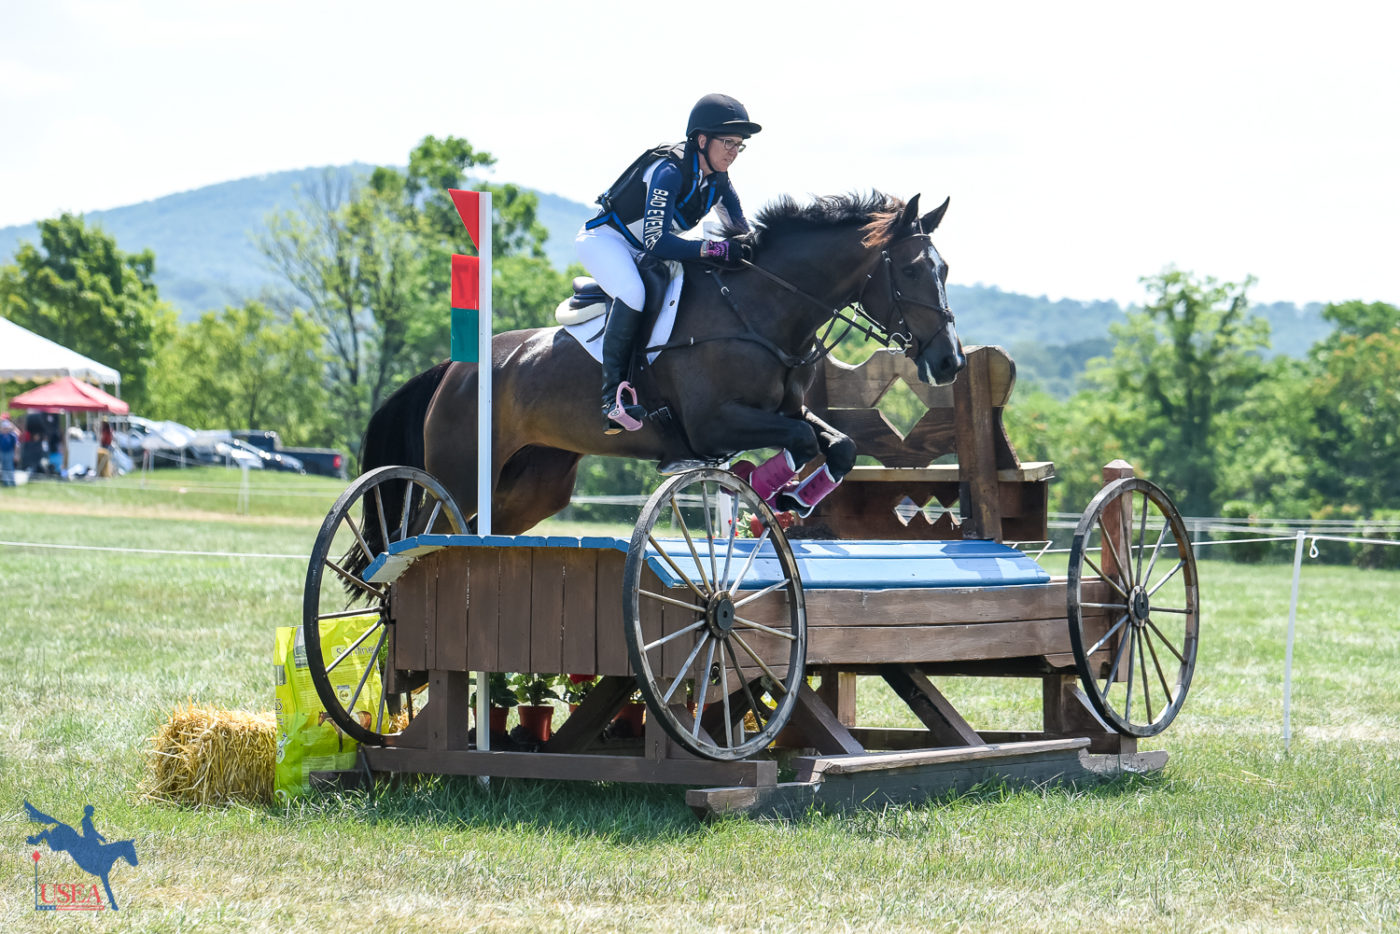 21st - Laura Szeremi and Atrax Robustus - 61.0